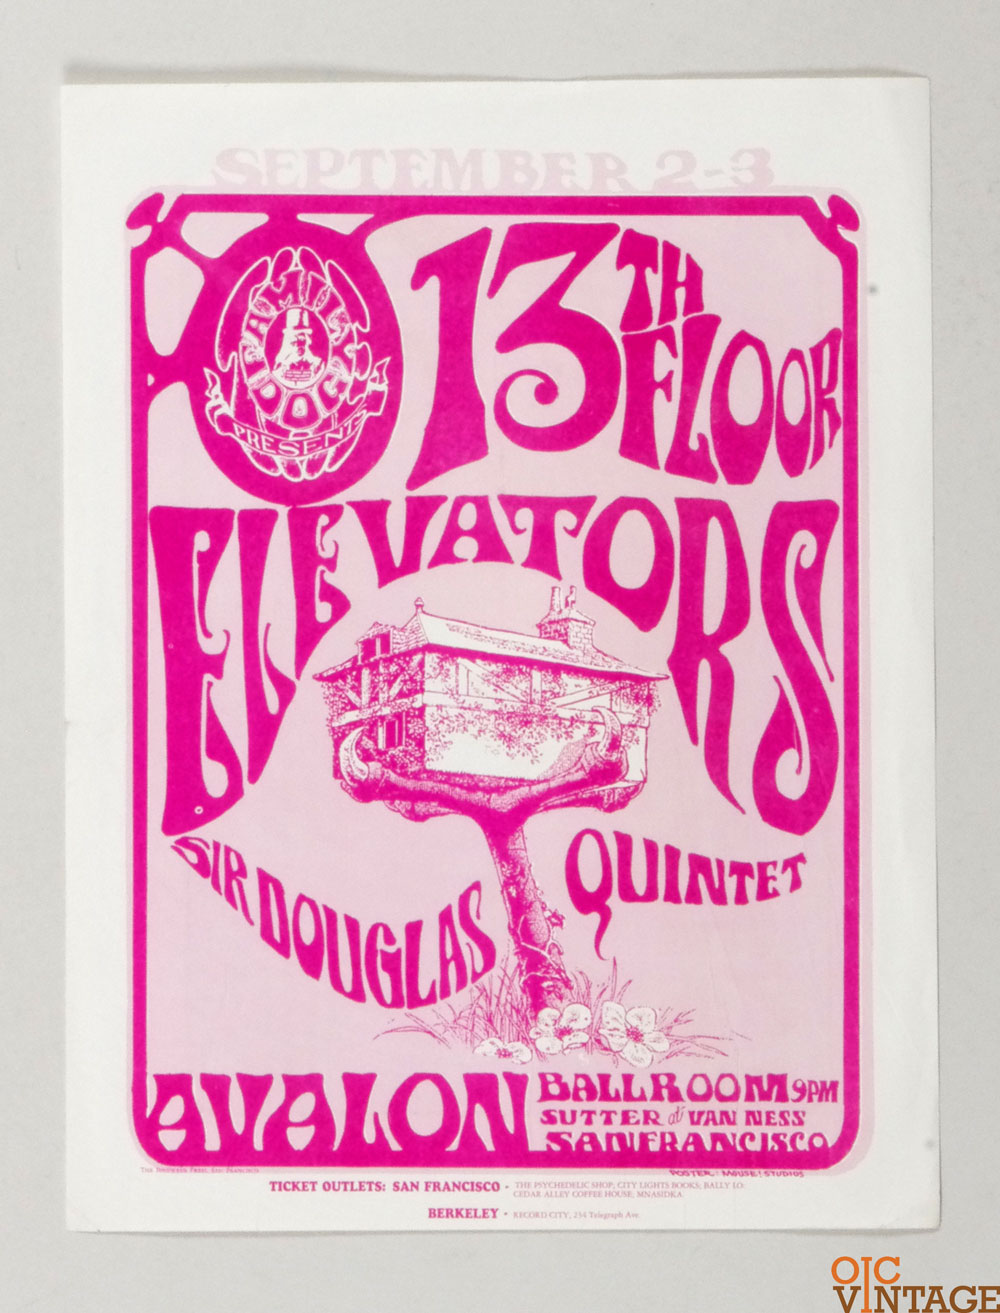 Family Dog  24 Handbill Tree House 1966 Sep 2 13th Floor Elevators